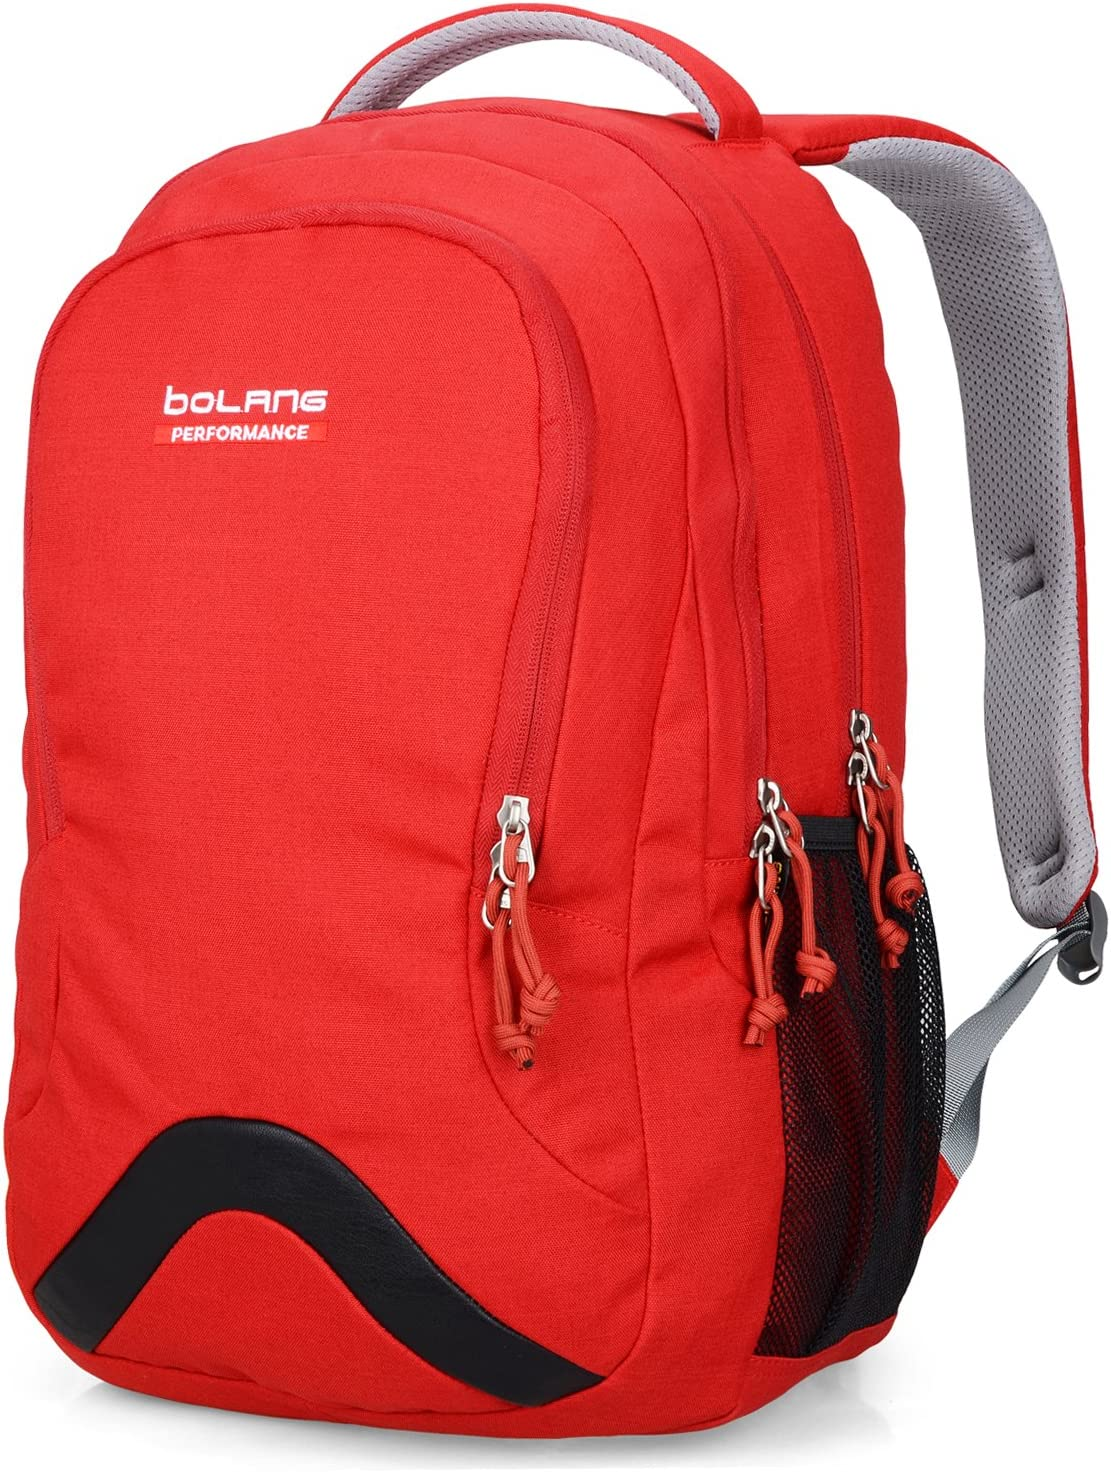 BOLANG College Backpack for Men Water Resistant Travel Backpack Women Laptop Backpacks Fits 16 Inch Laptop Notebook 8474 (bright red)